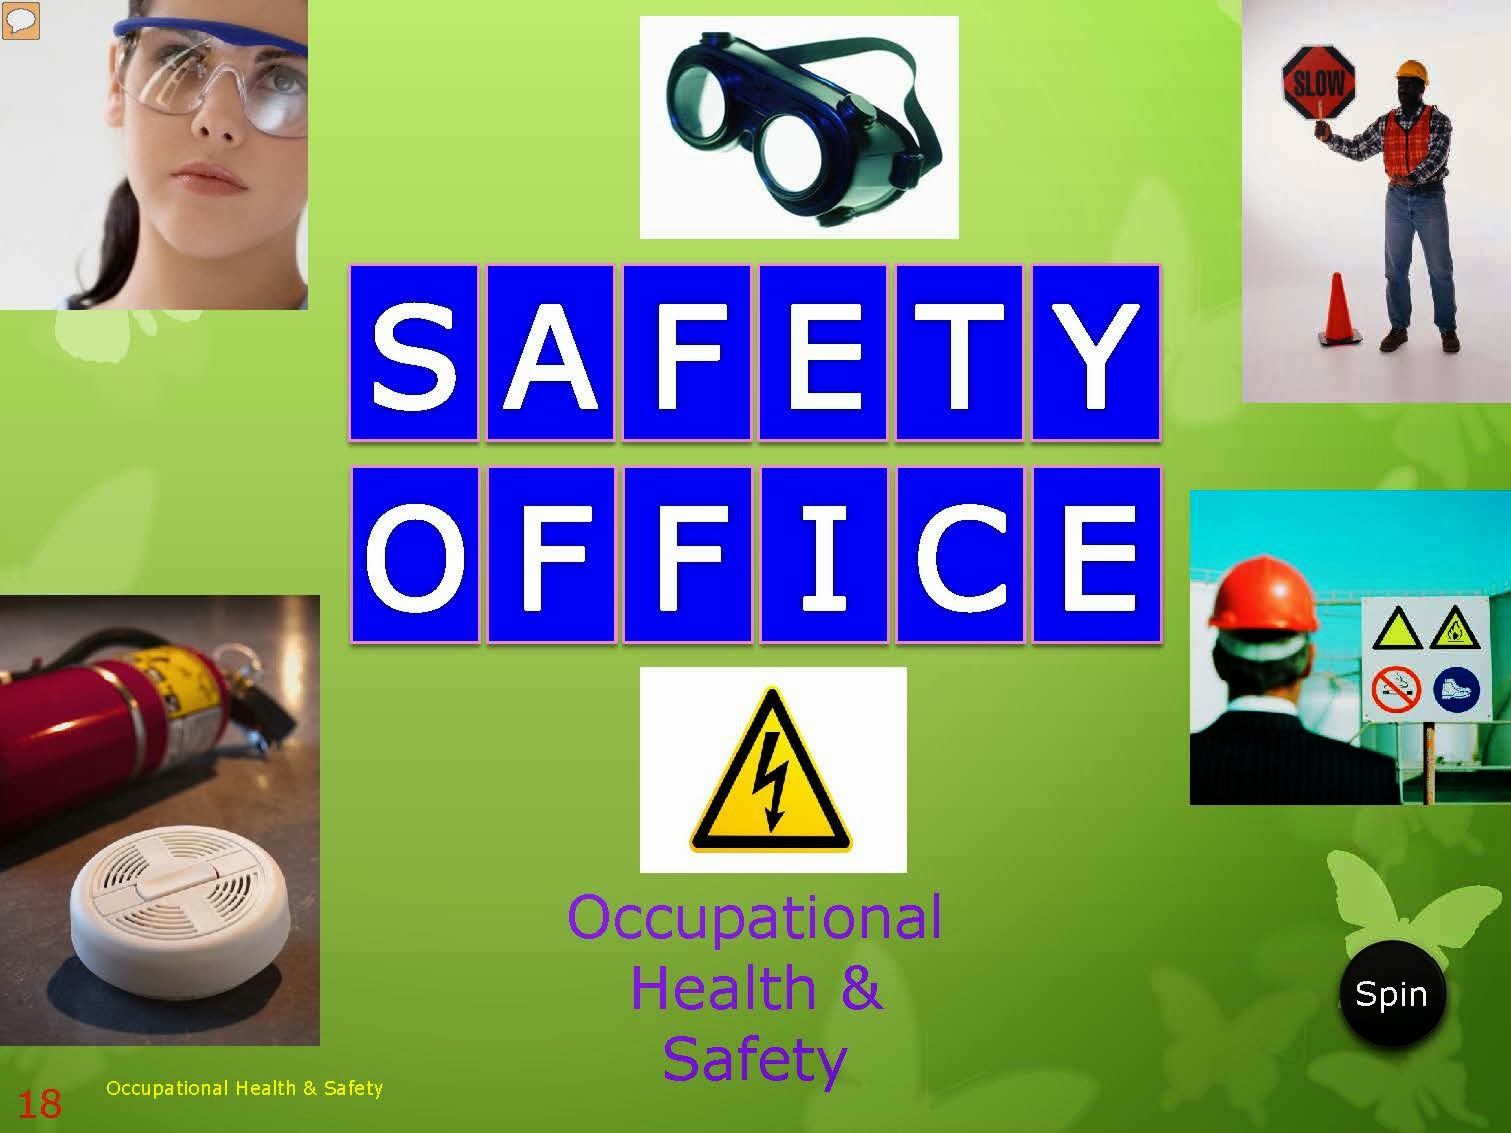 OCCUPATIONAL HEALTH AND SAFETY OFFICE TEAM